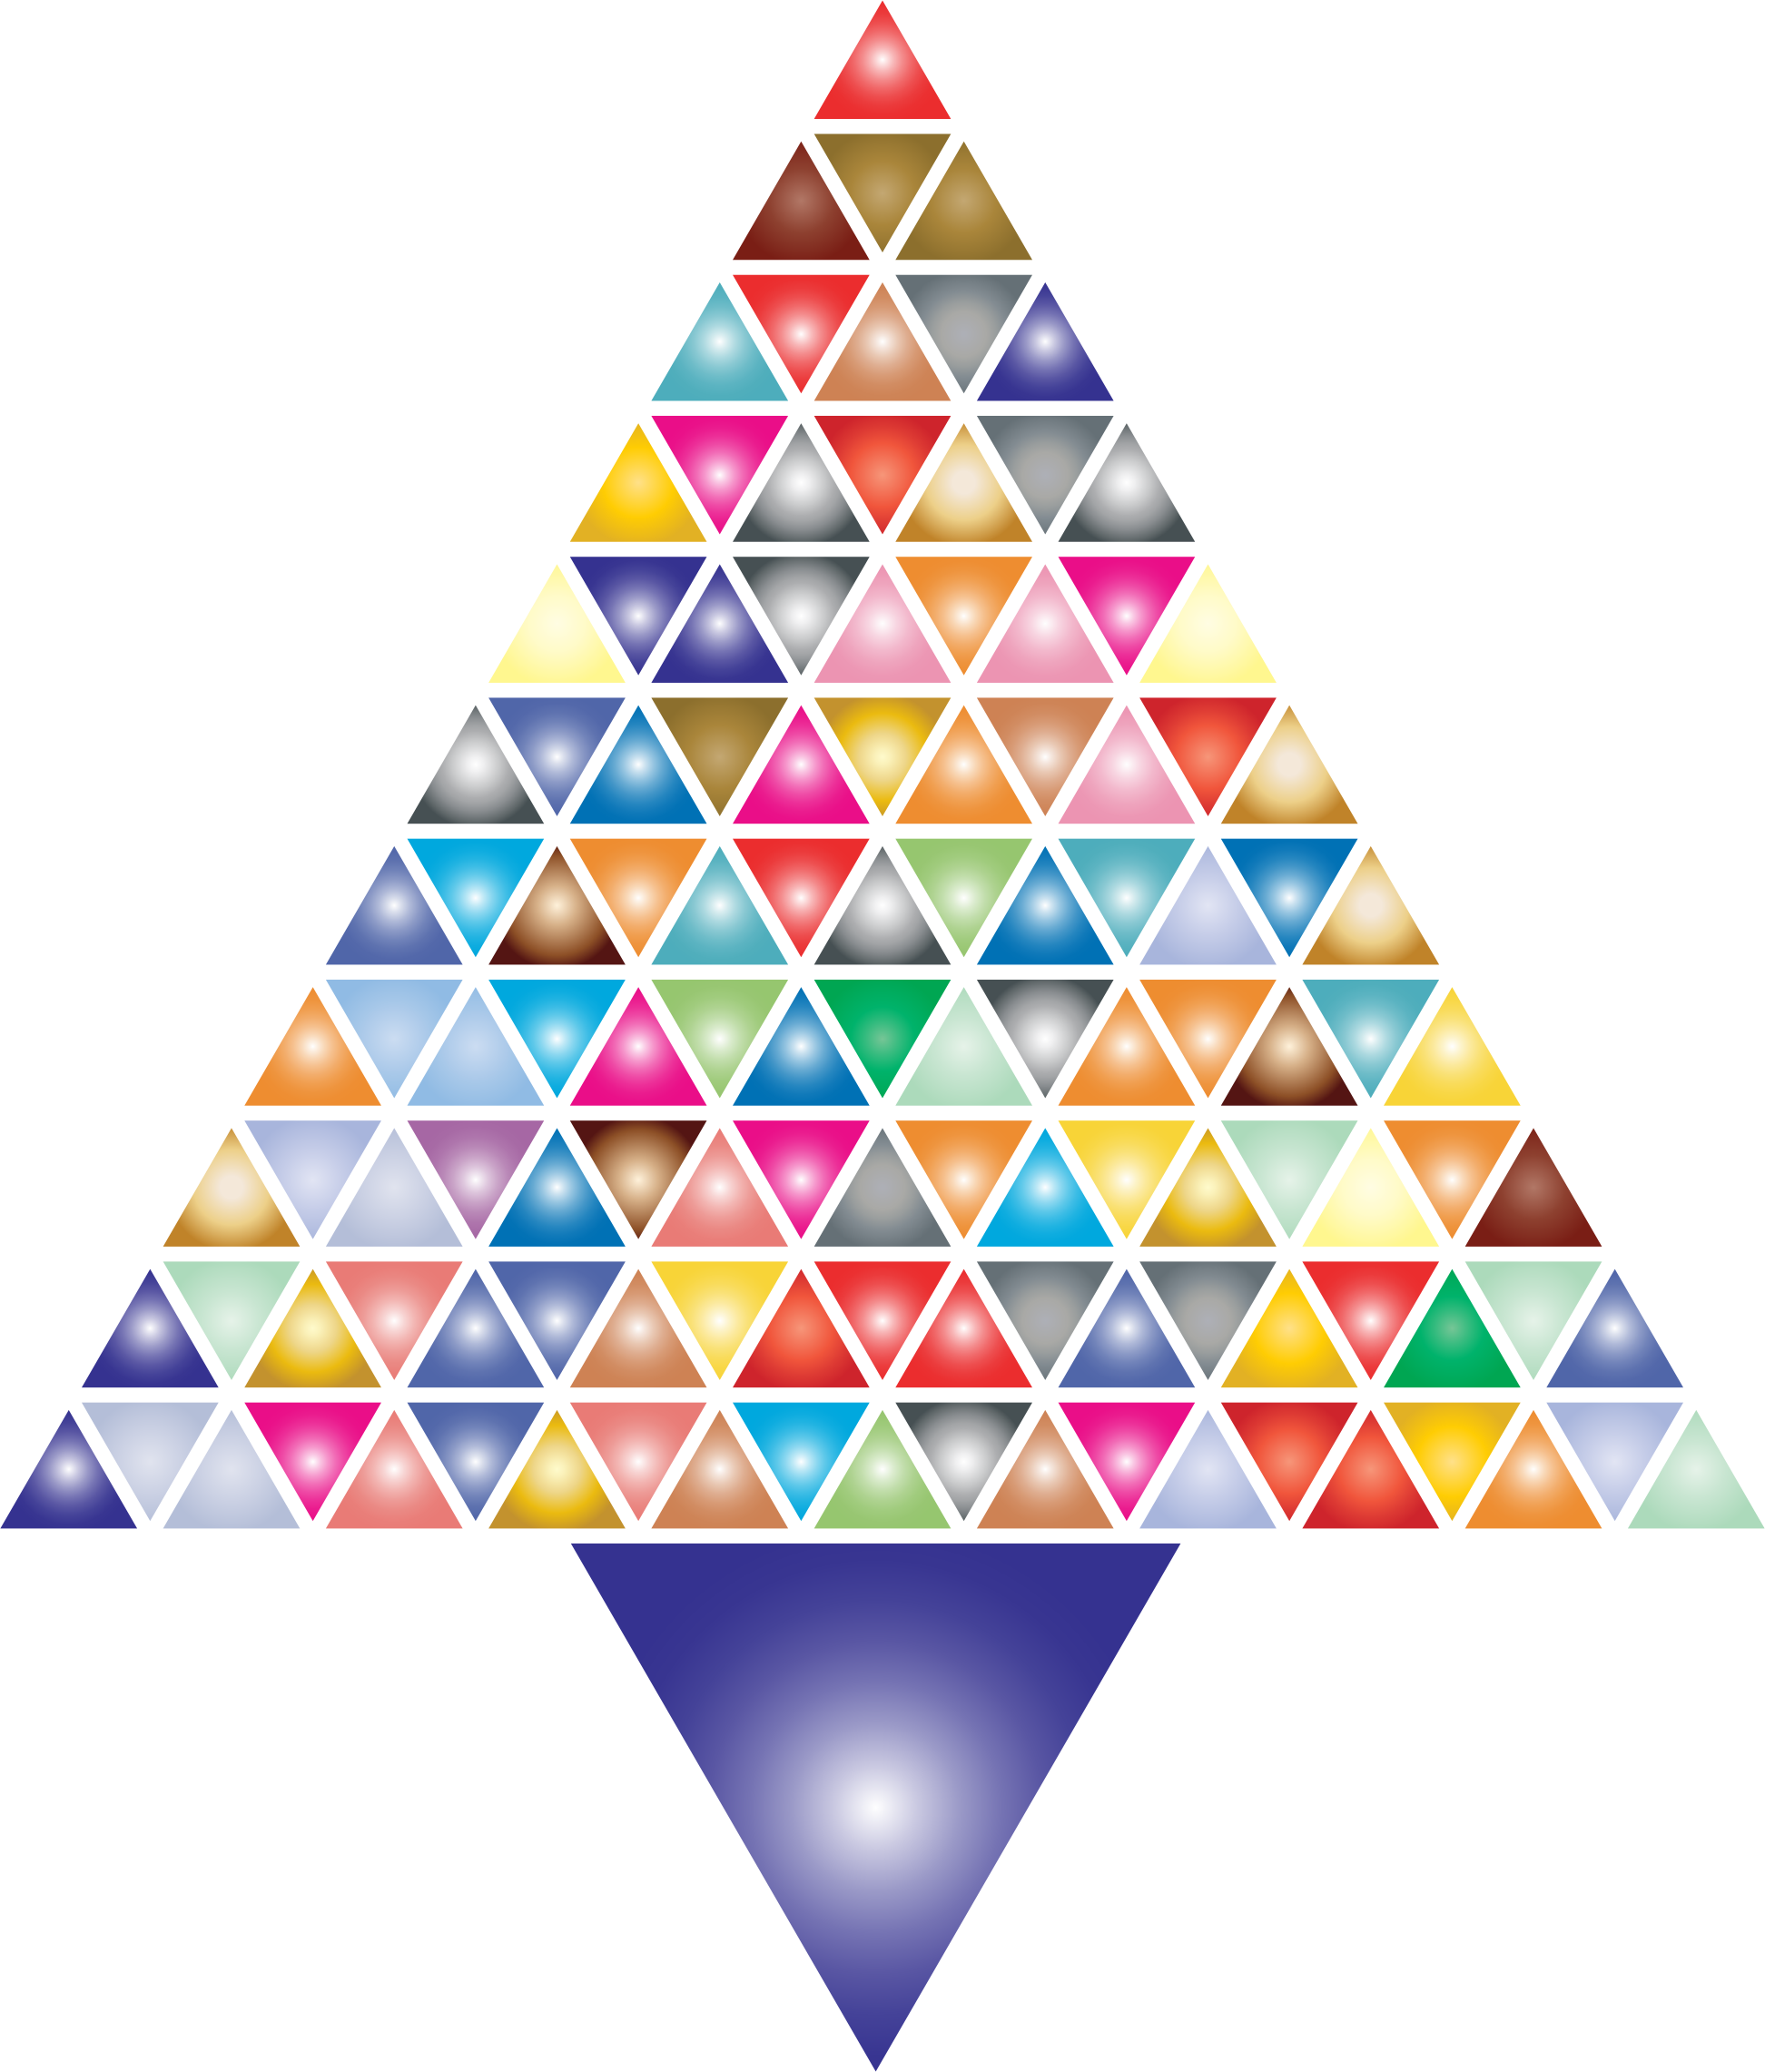 Clipart - Prismatic Abstract Triangular Christmas Tree 2 image black and white